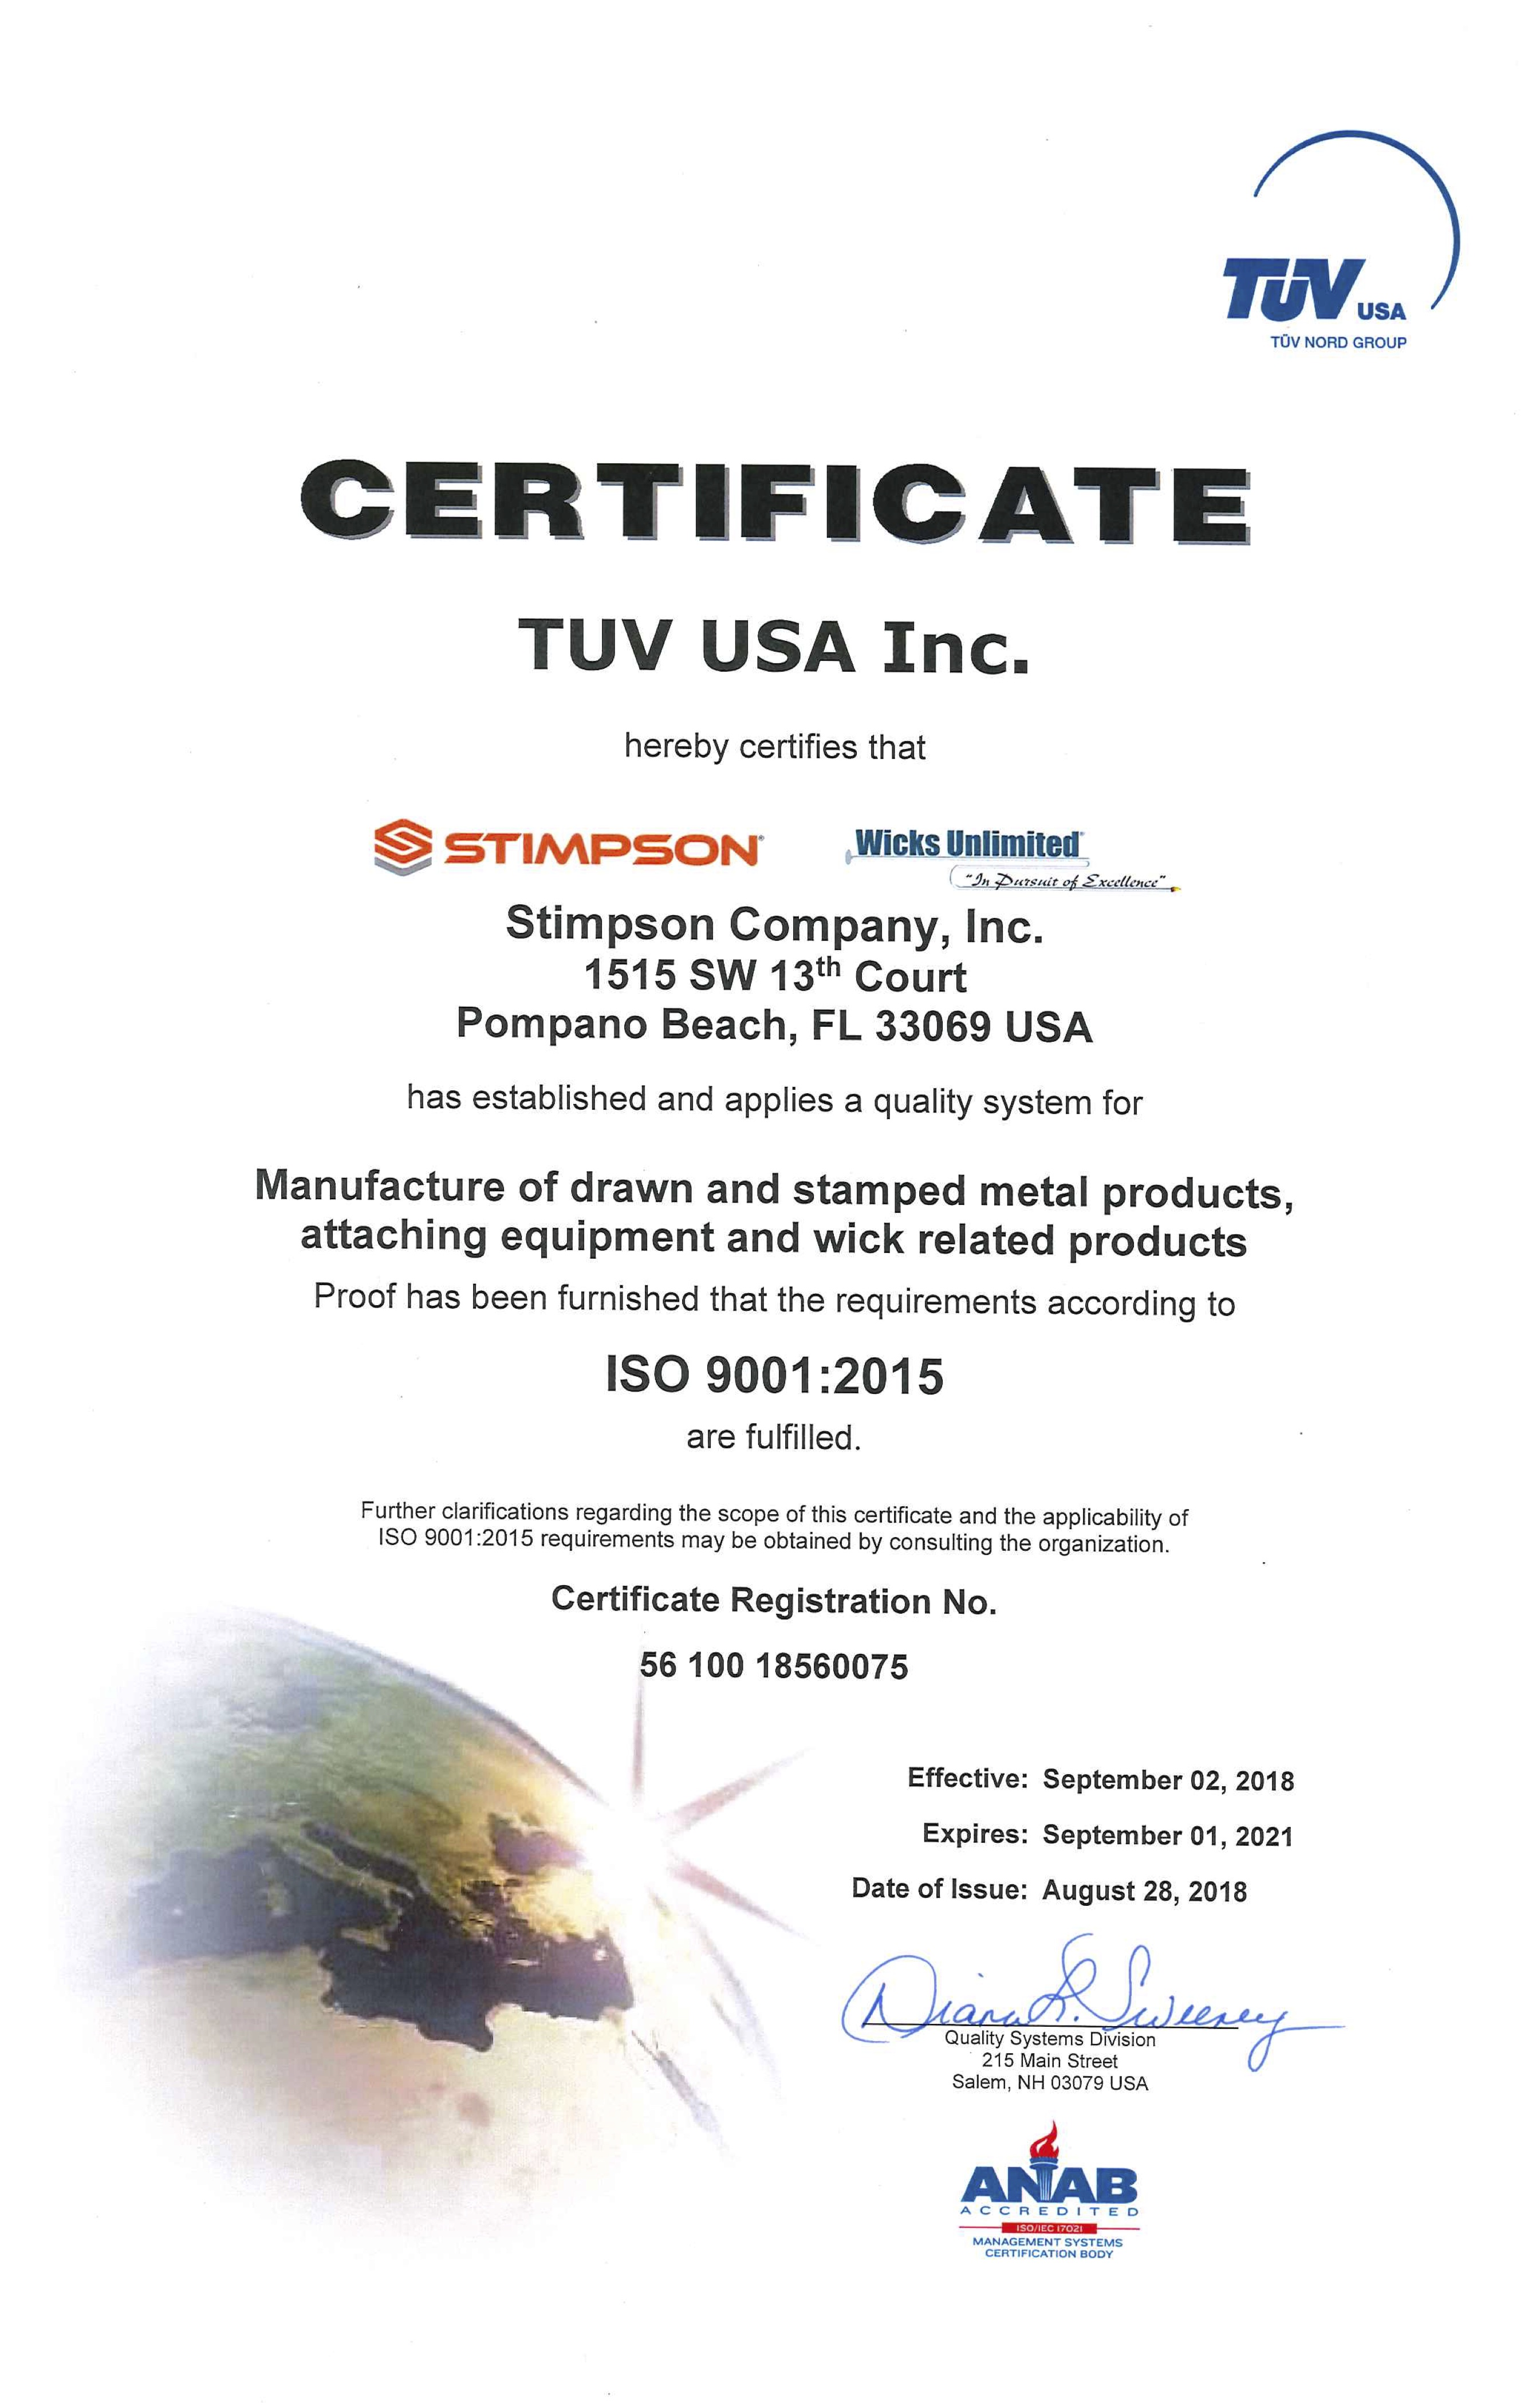 Wicks Unlimited ISO Certification